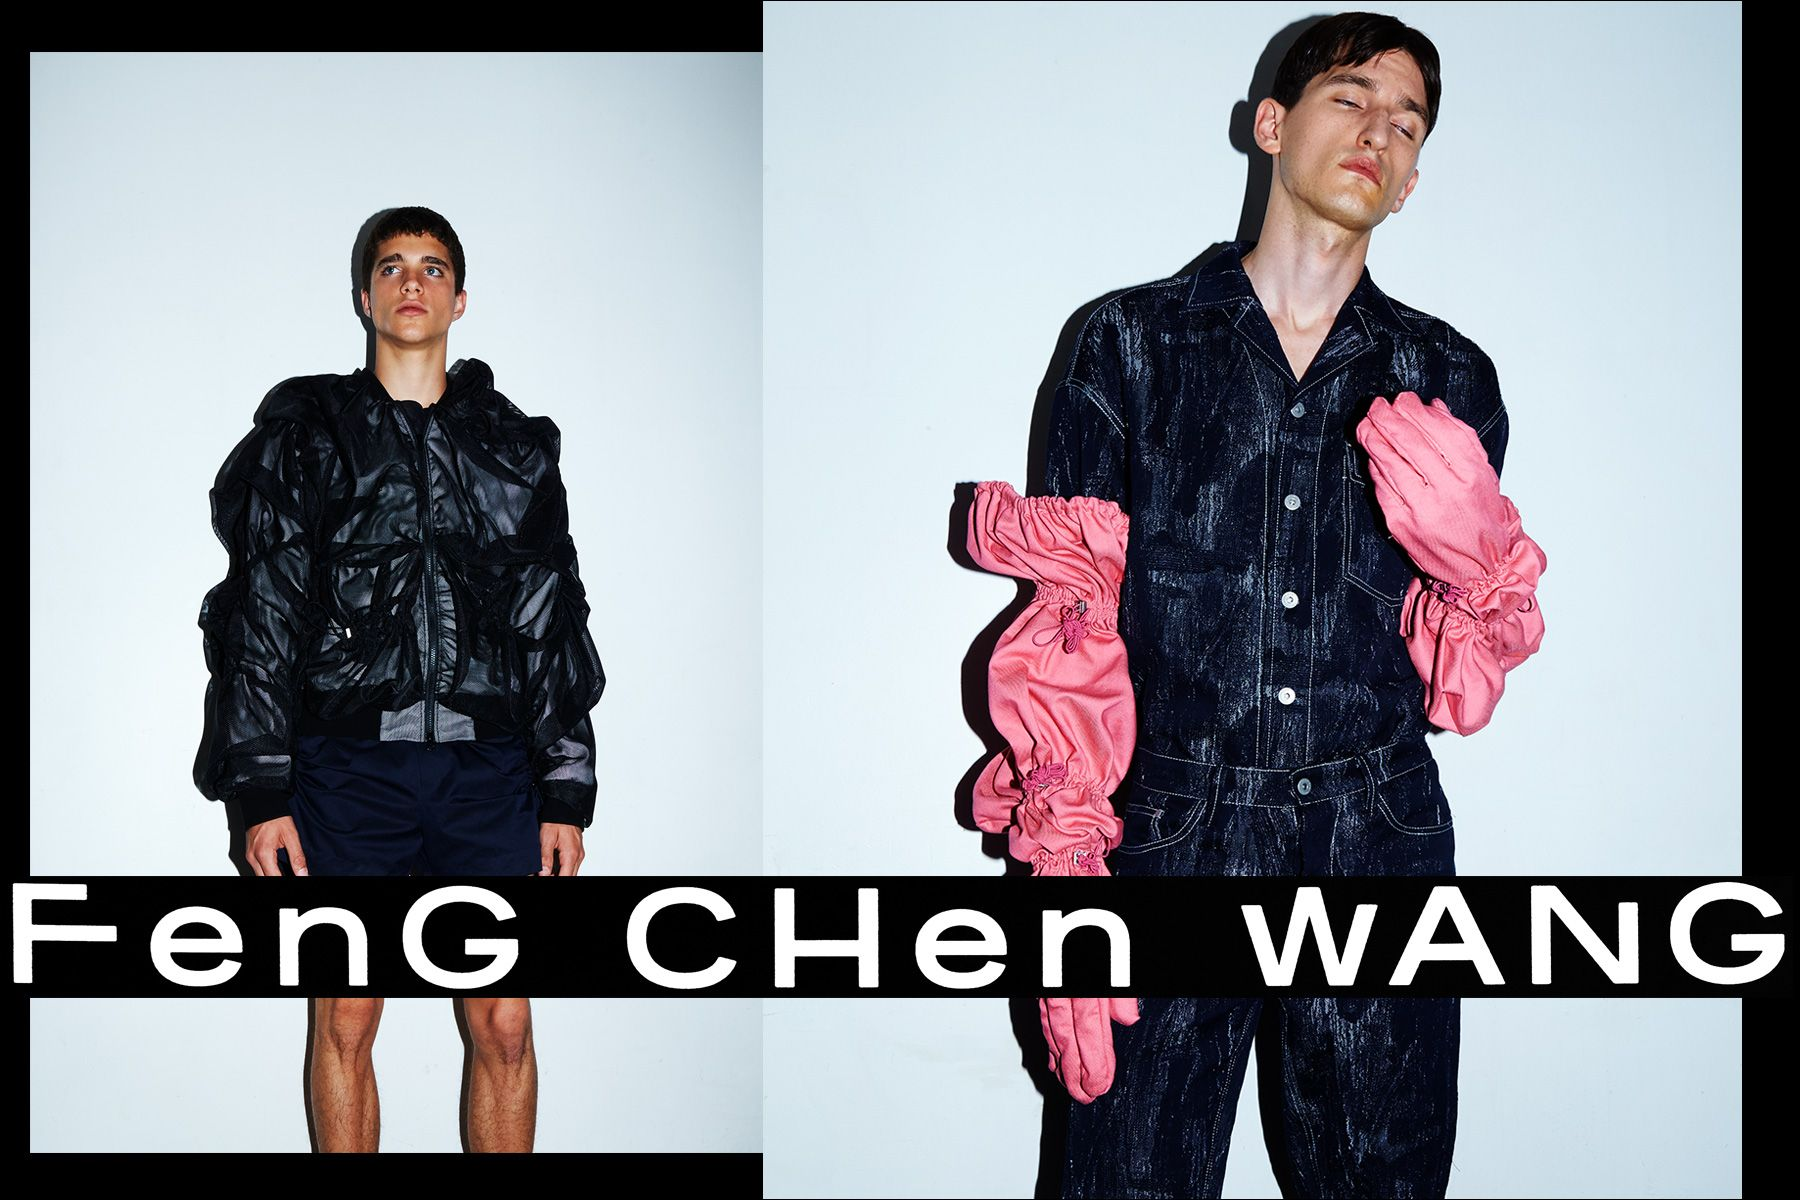 Feng Chen Wang. S/S18. Photography by Alexander Thompson for Ponyboy magazine New York.